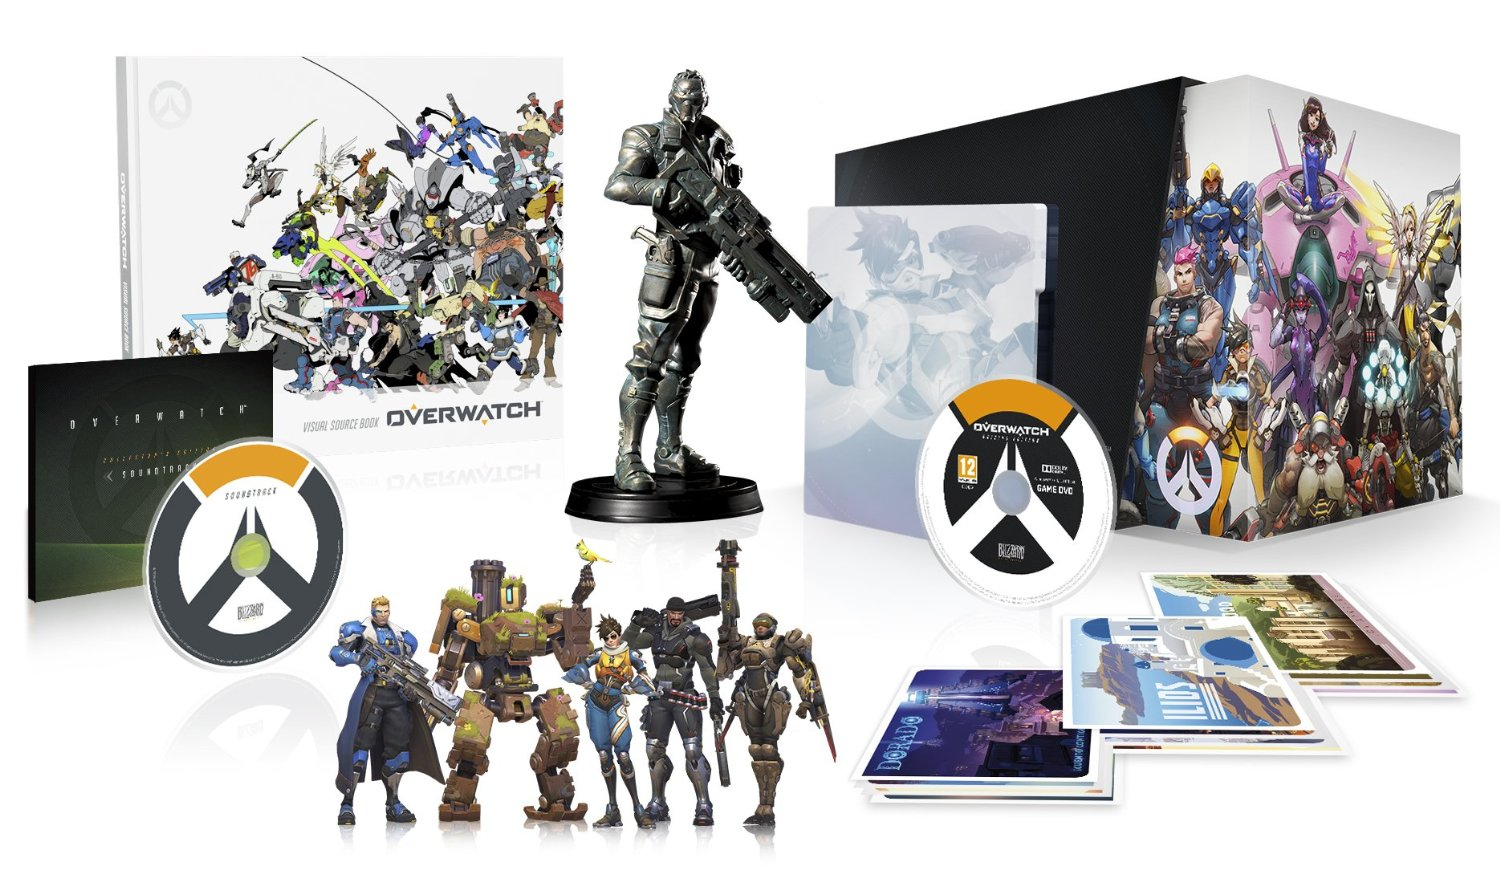 Overwatch collector steelbook